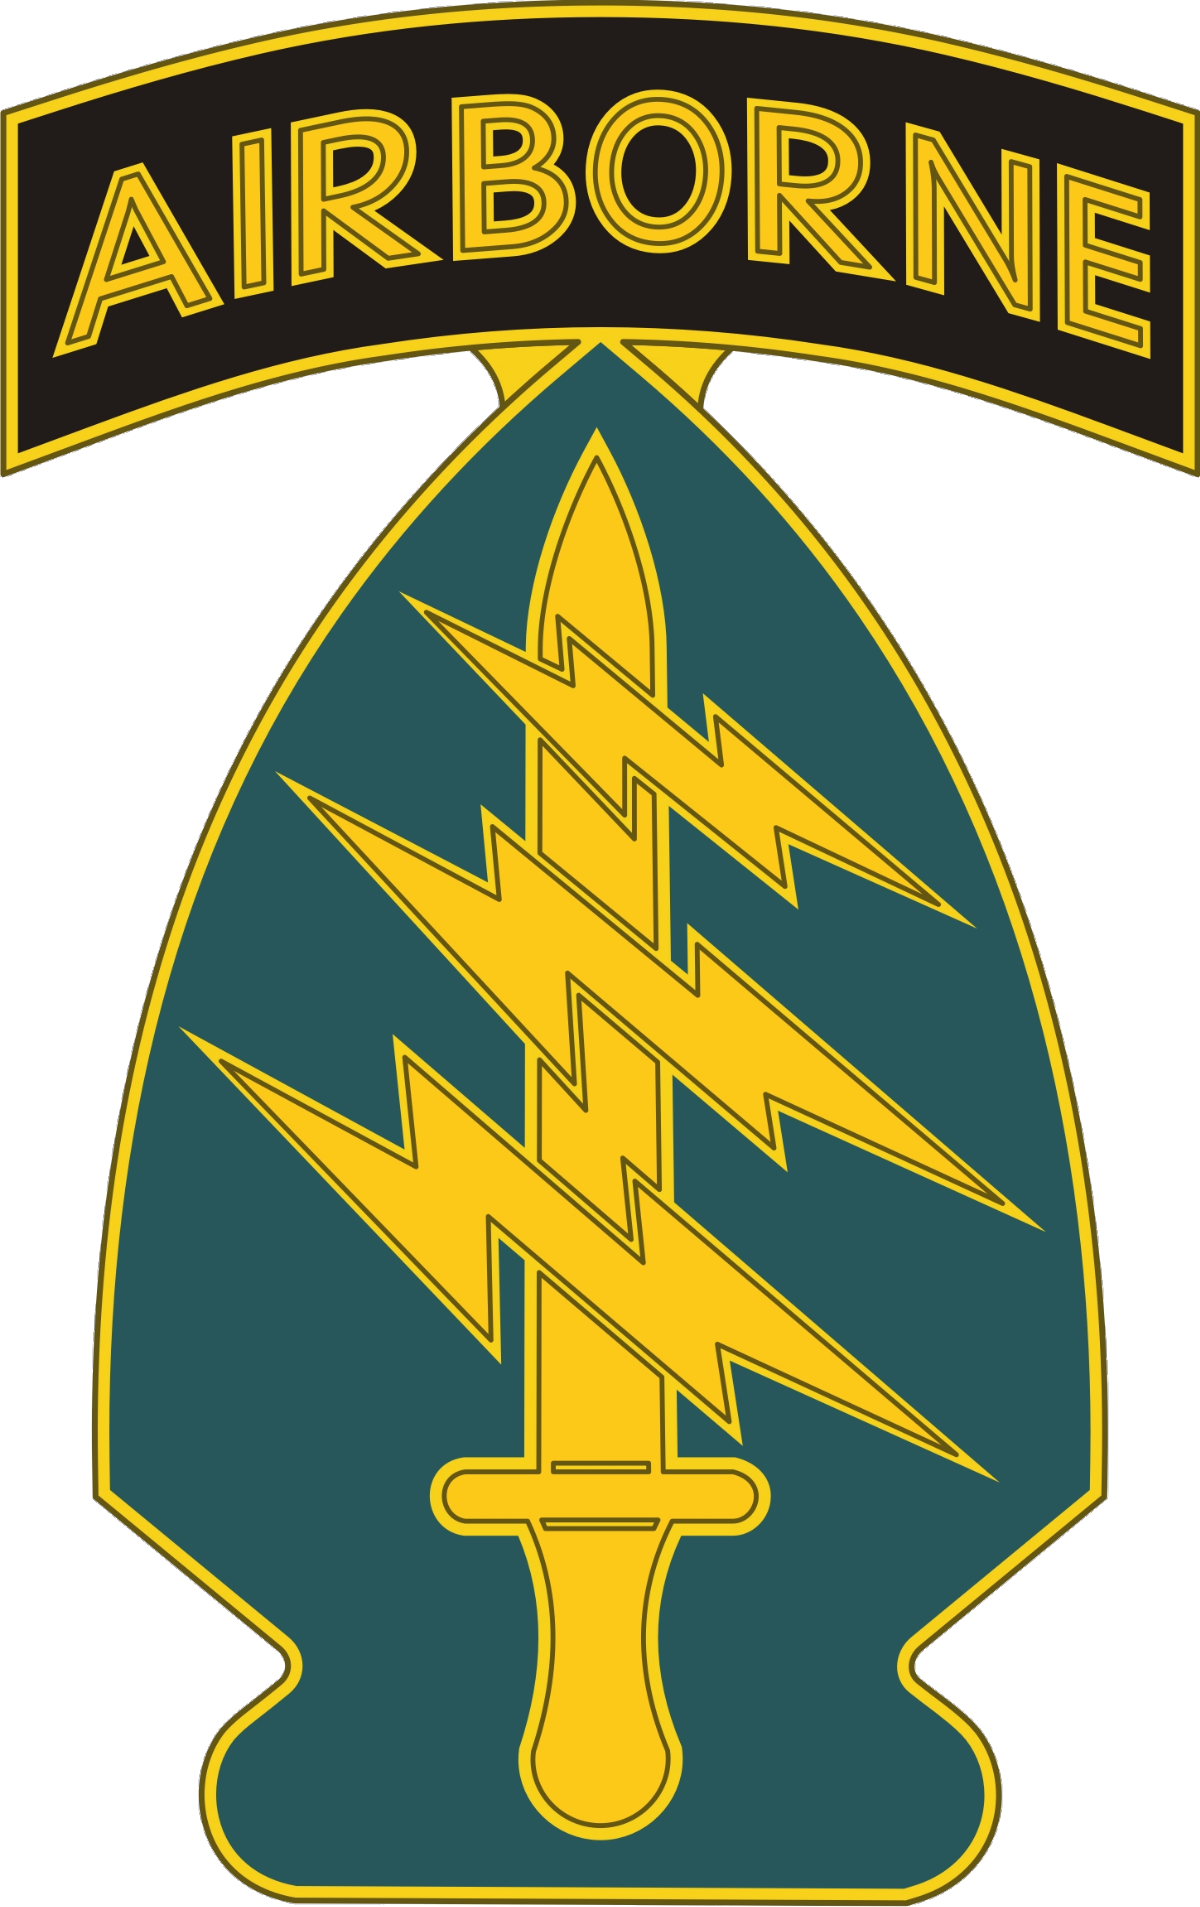 Invasion clipart armed force States Army) Wikipedia (United